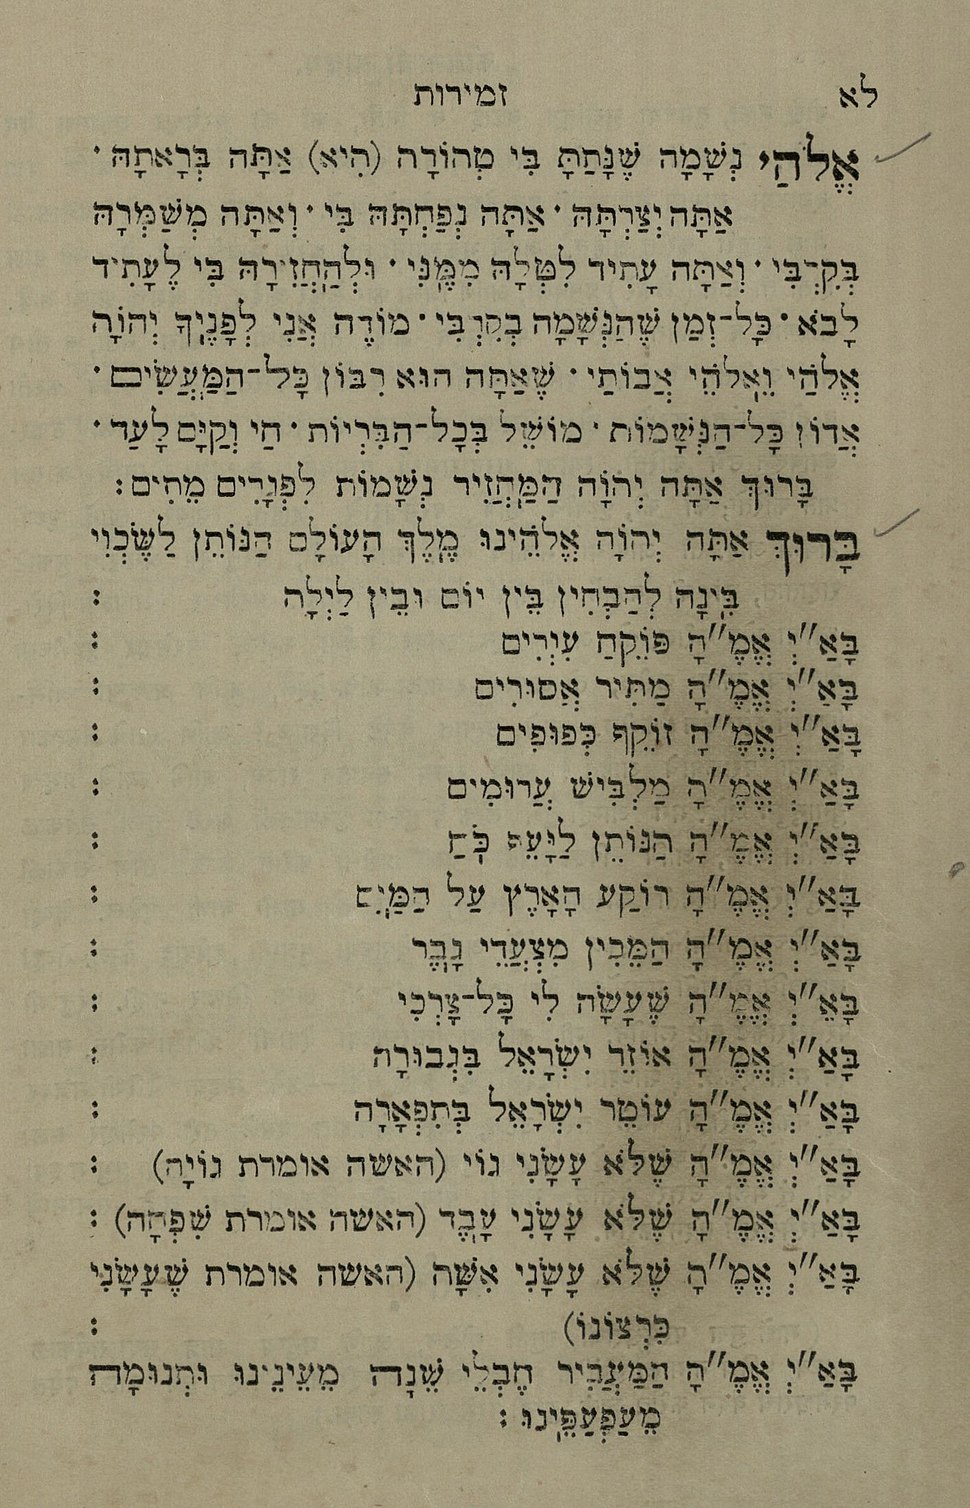 The National Library of Israel - The Daily Prayers translated from Hebrew to Marathi 1388562 2340601-10-0074 WEB